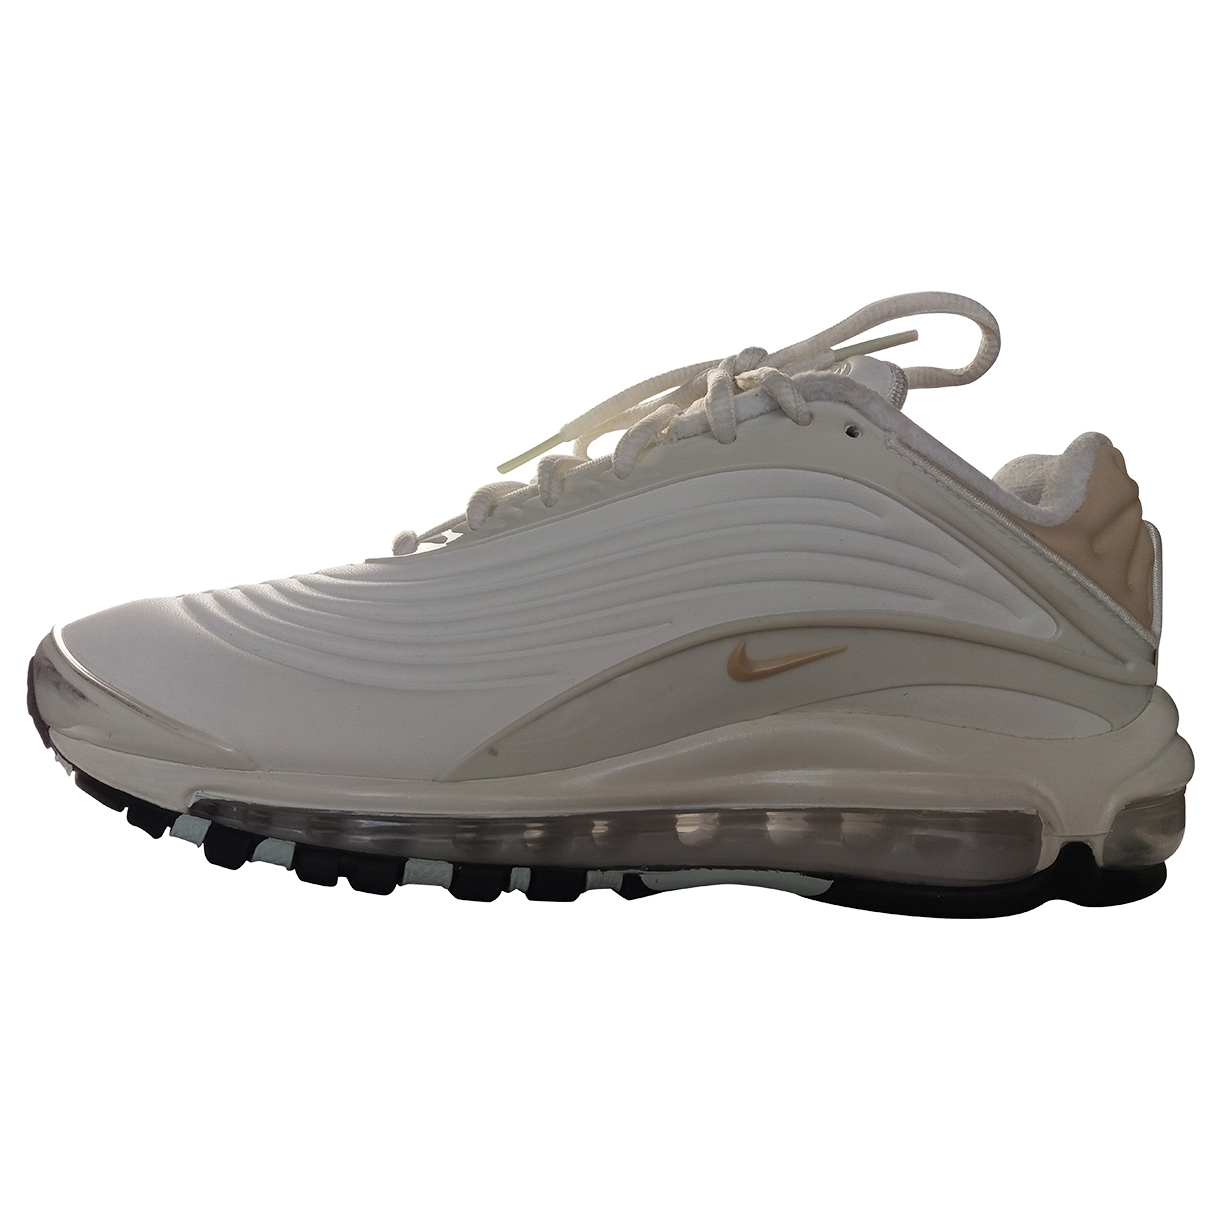 Nike Air Max Deluxe White Trainers for Women 39 EU